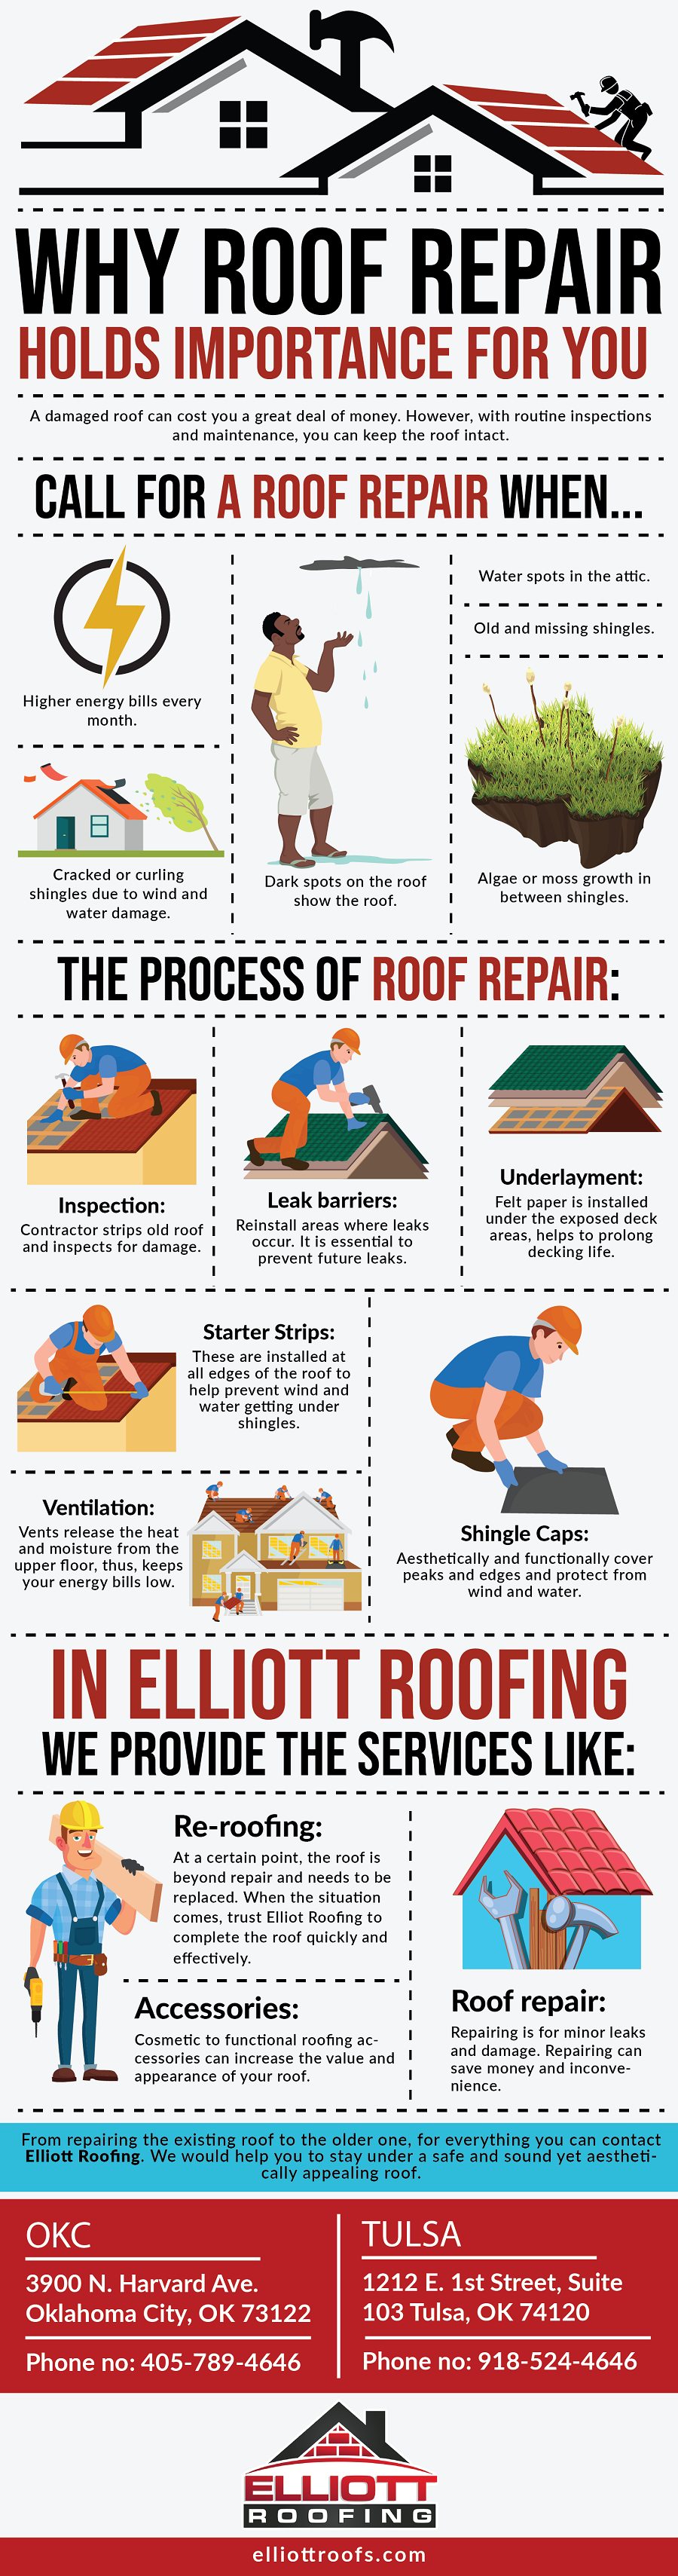 Why Roof Repair Holds Importance For You.png